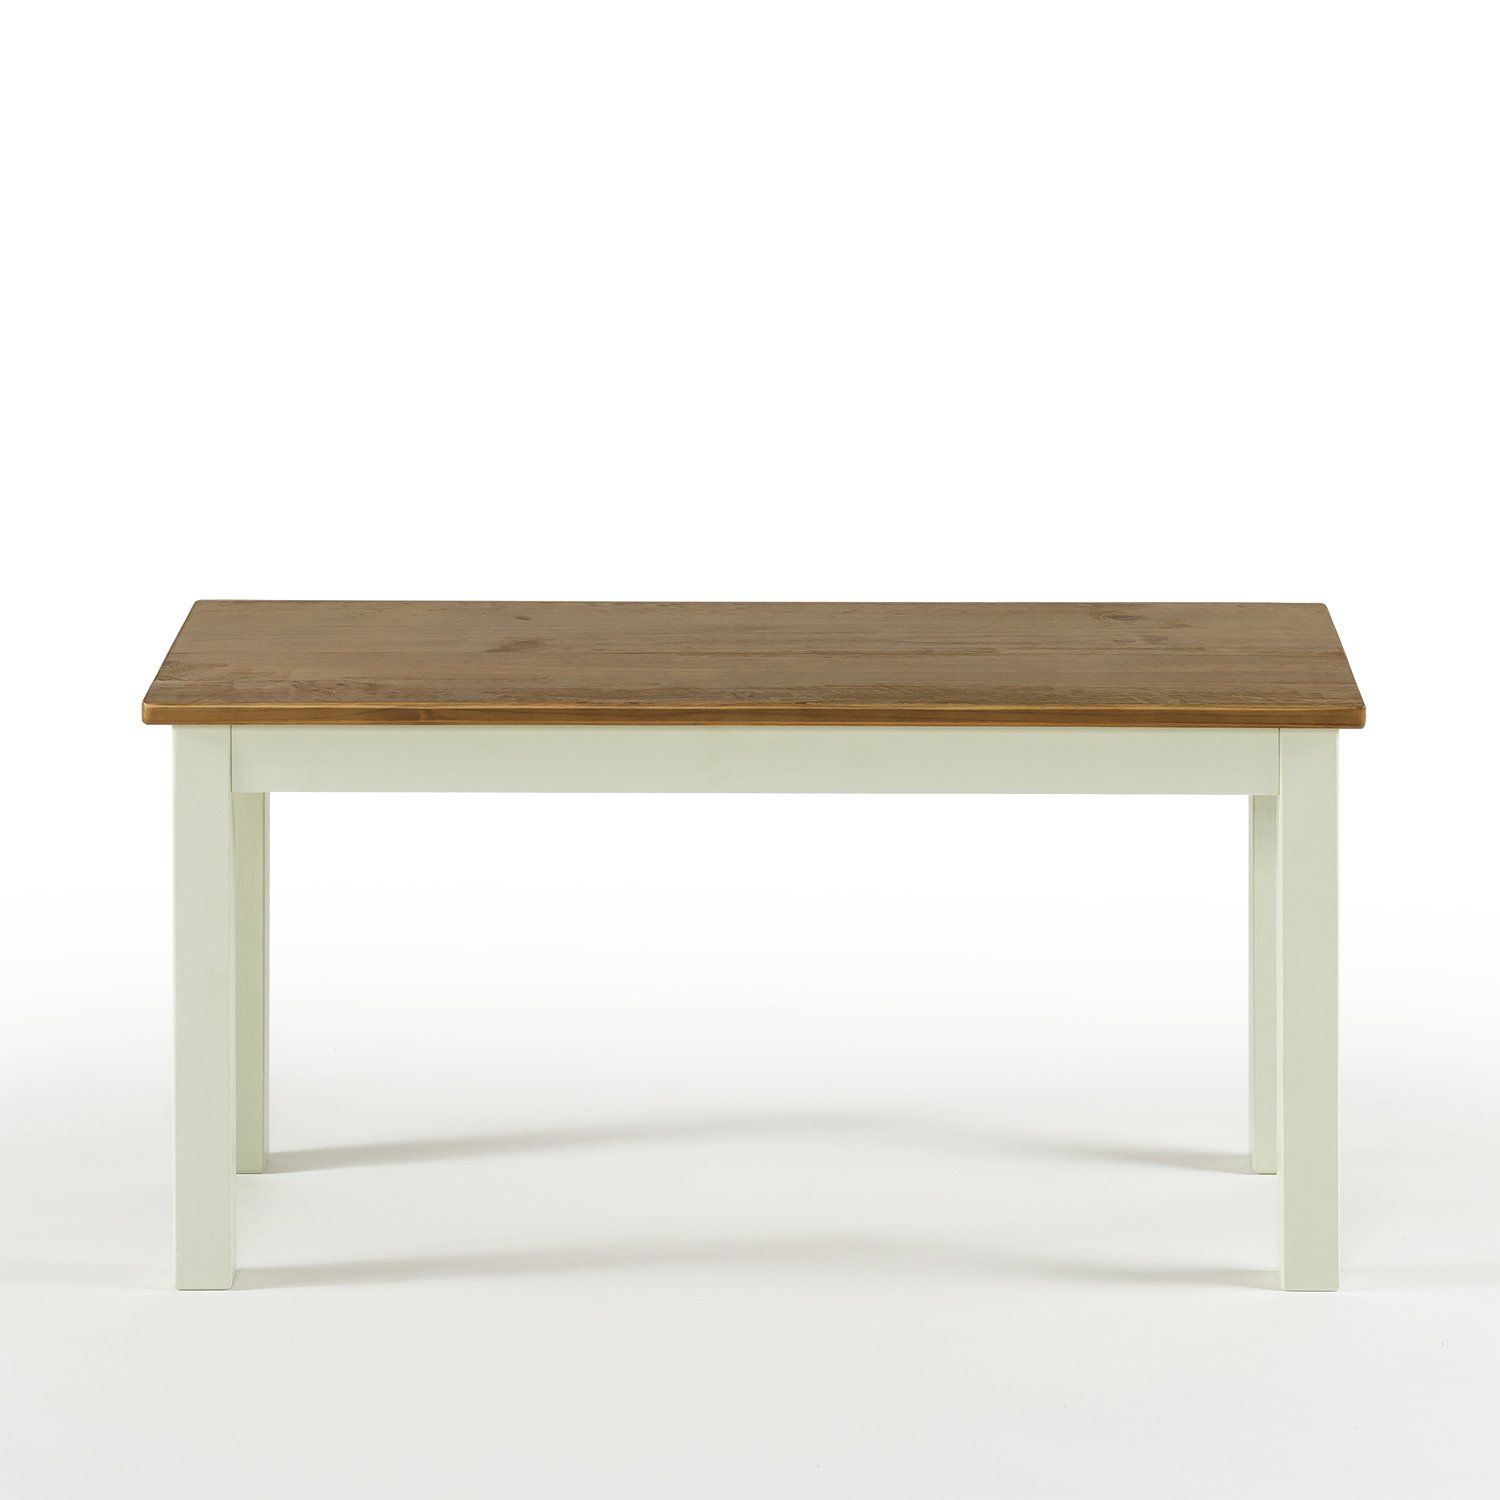 Zinus Farmhouse Wood Bench